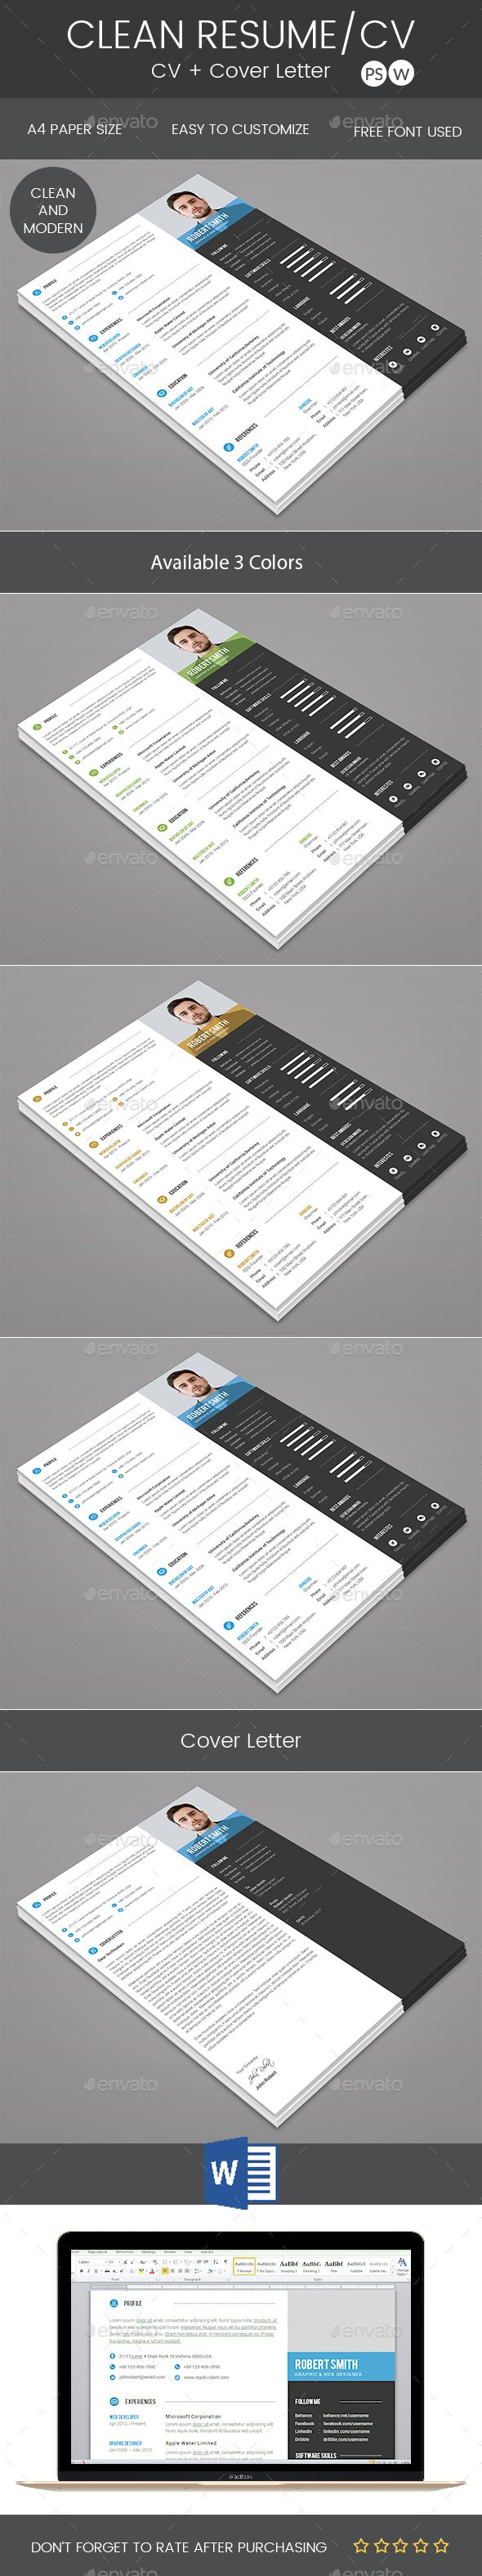 Clean Resume & Cover Letter #psd template #300dpi  • Download here → https://graphicriver.net/item/clean-resume-cover-letter/20948442?ref=pxcr